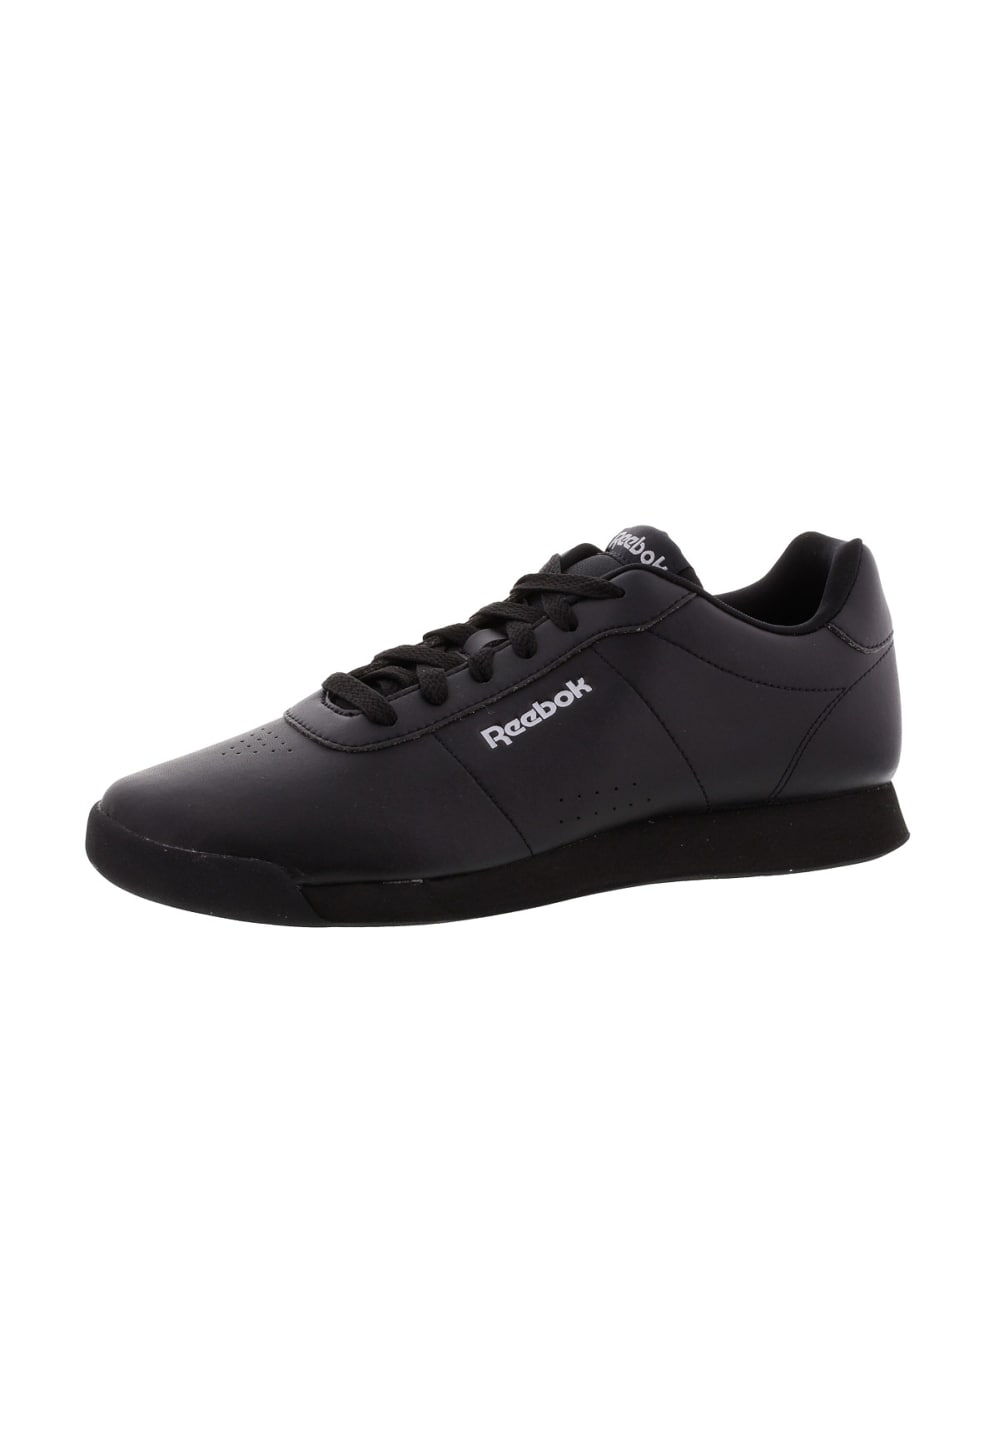 dbf76d891e7f Reebok Royal Charm - Fitness shoes for Women - Black